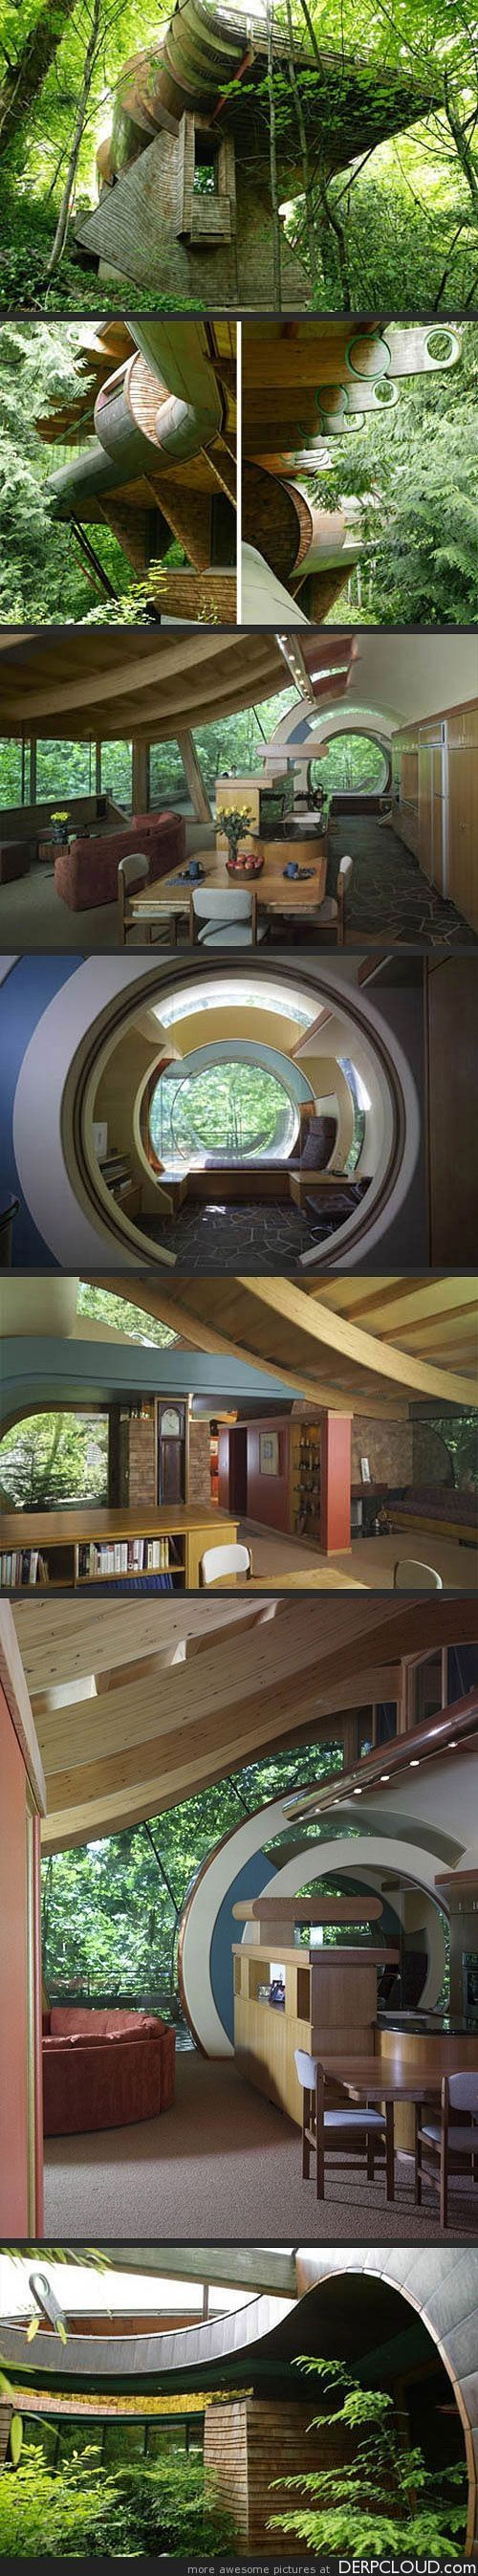 best wow factor images on pinterest futuristic architecture